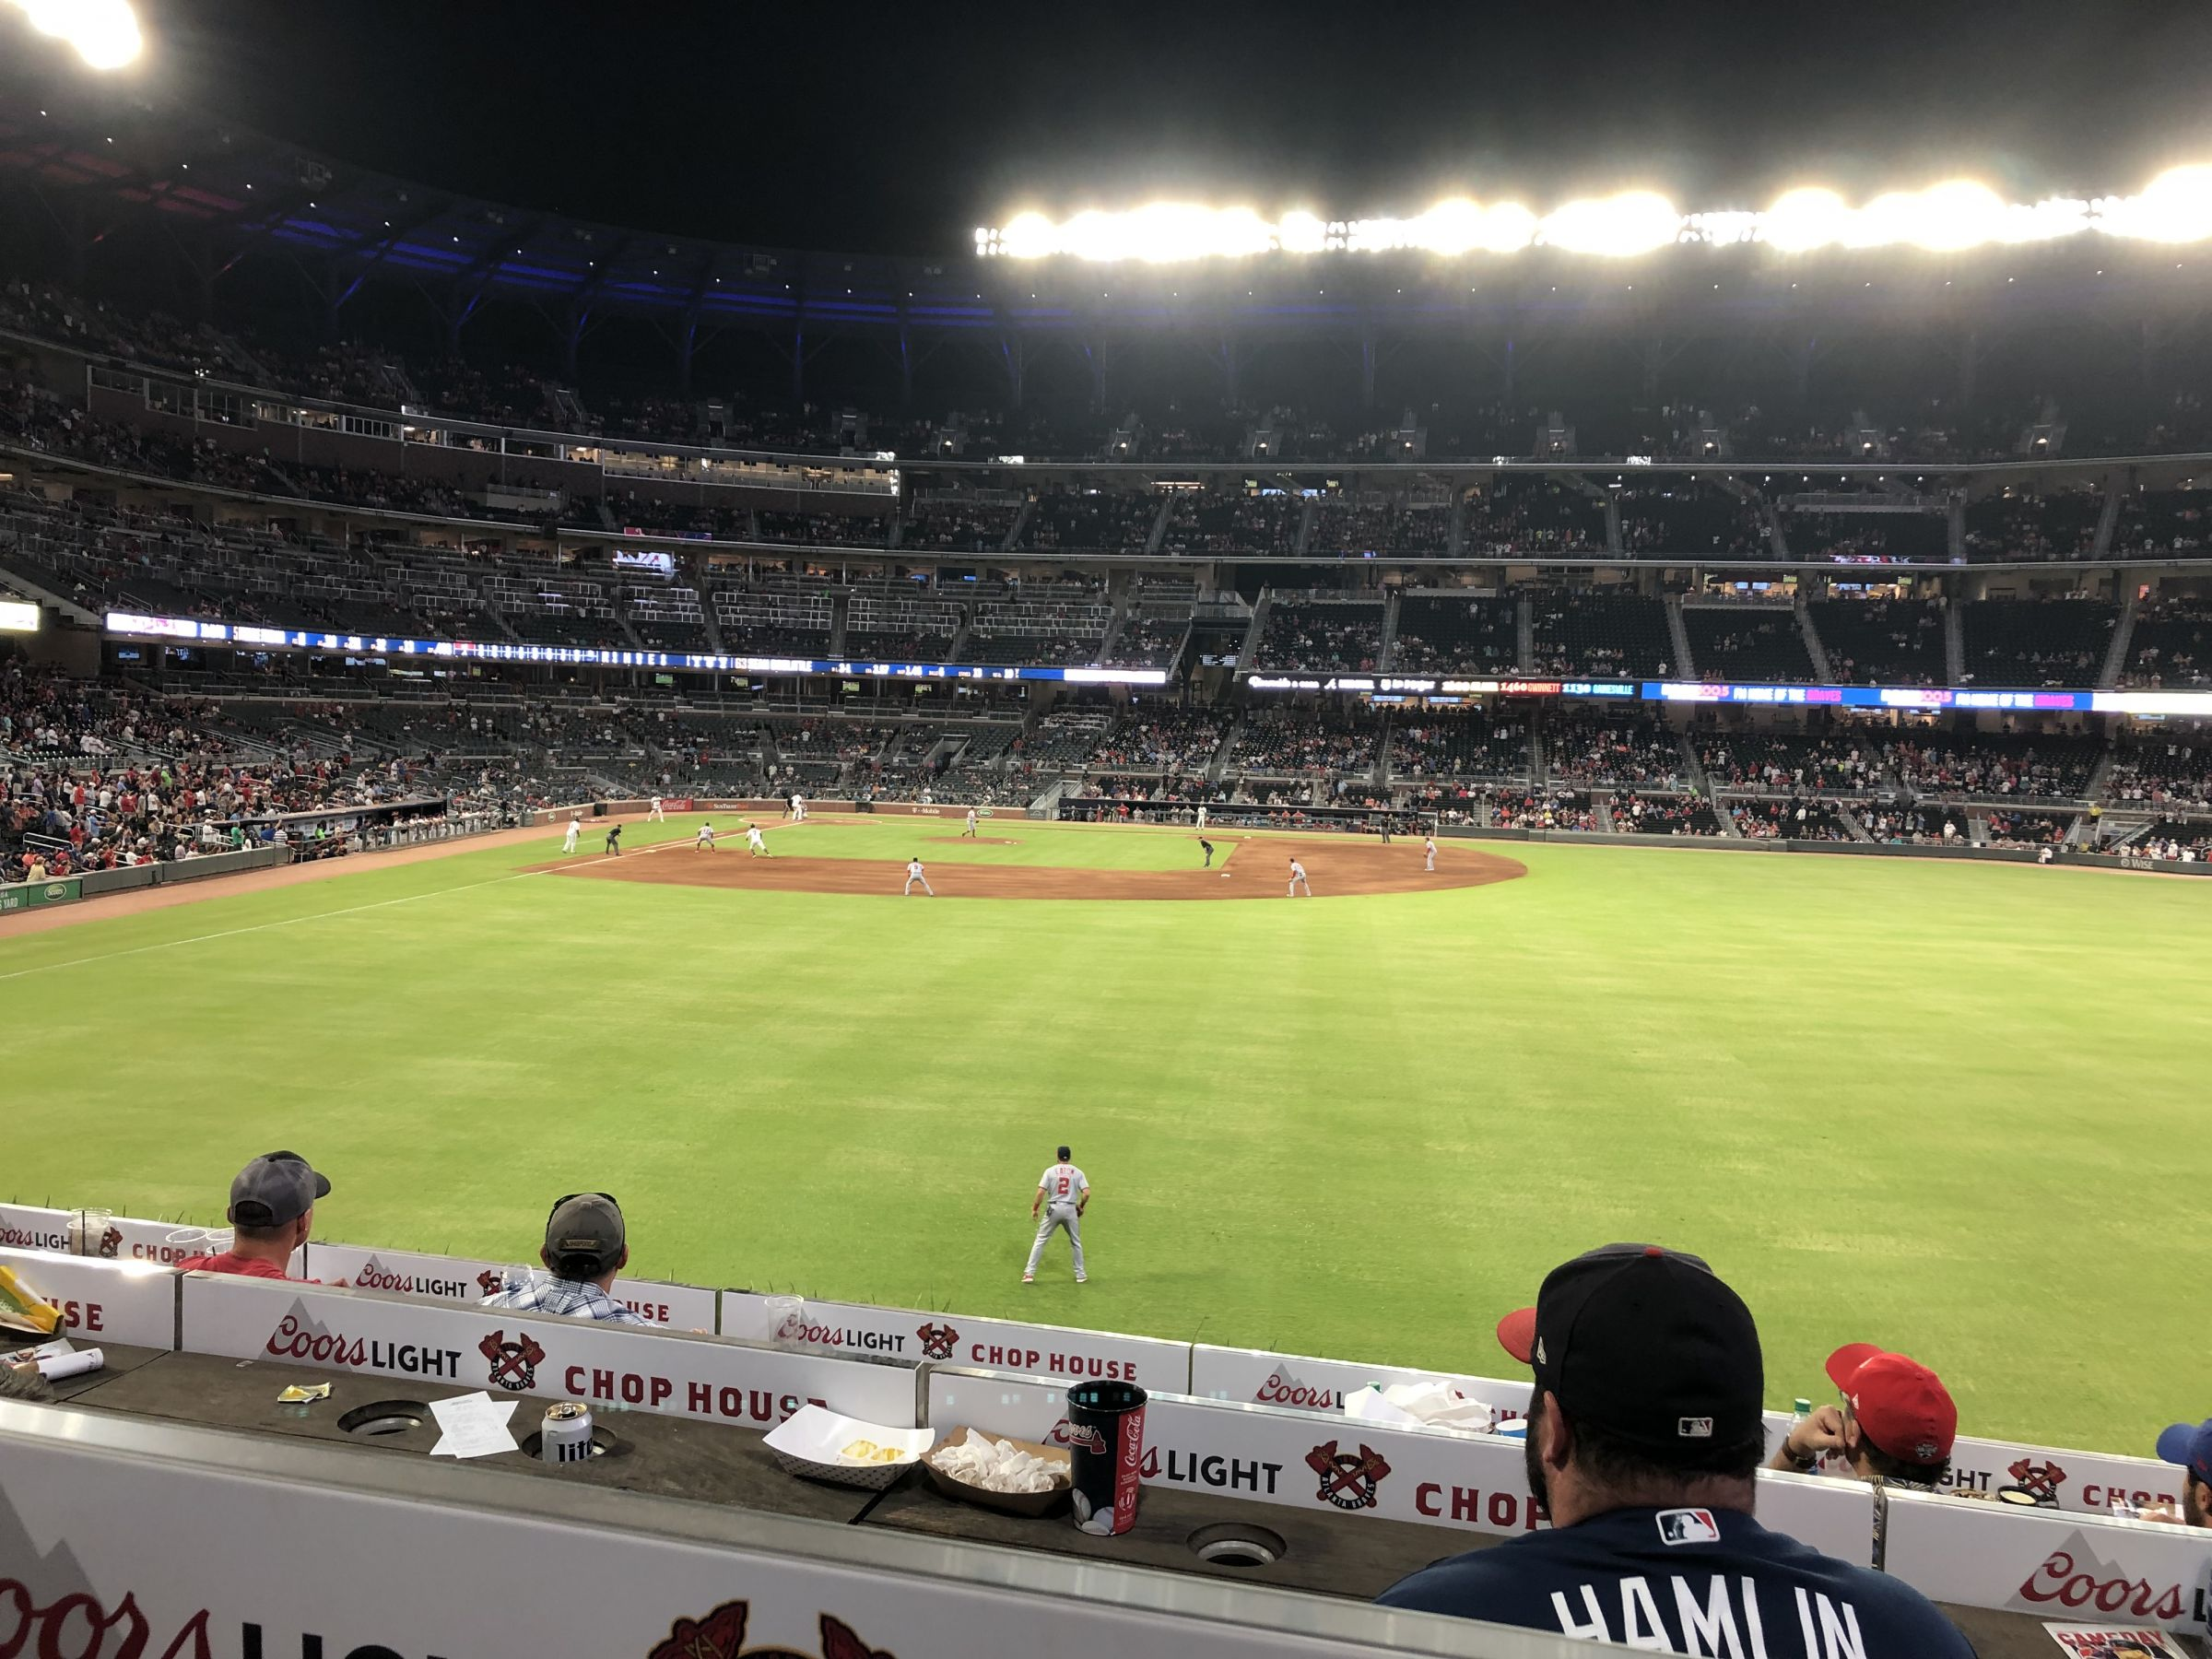 Section 157 seat view